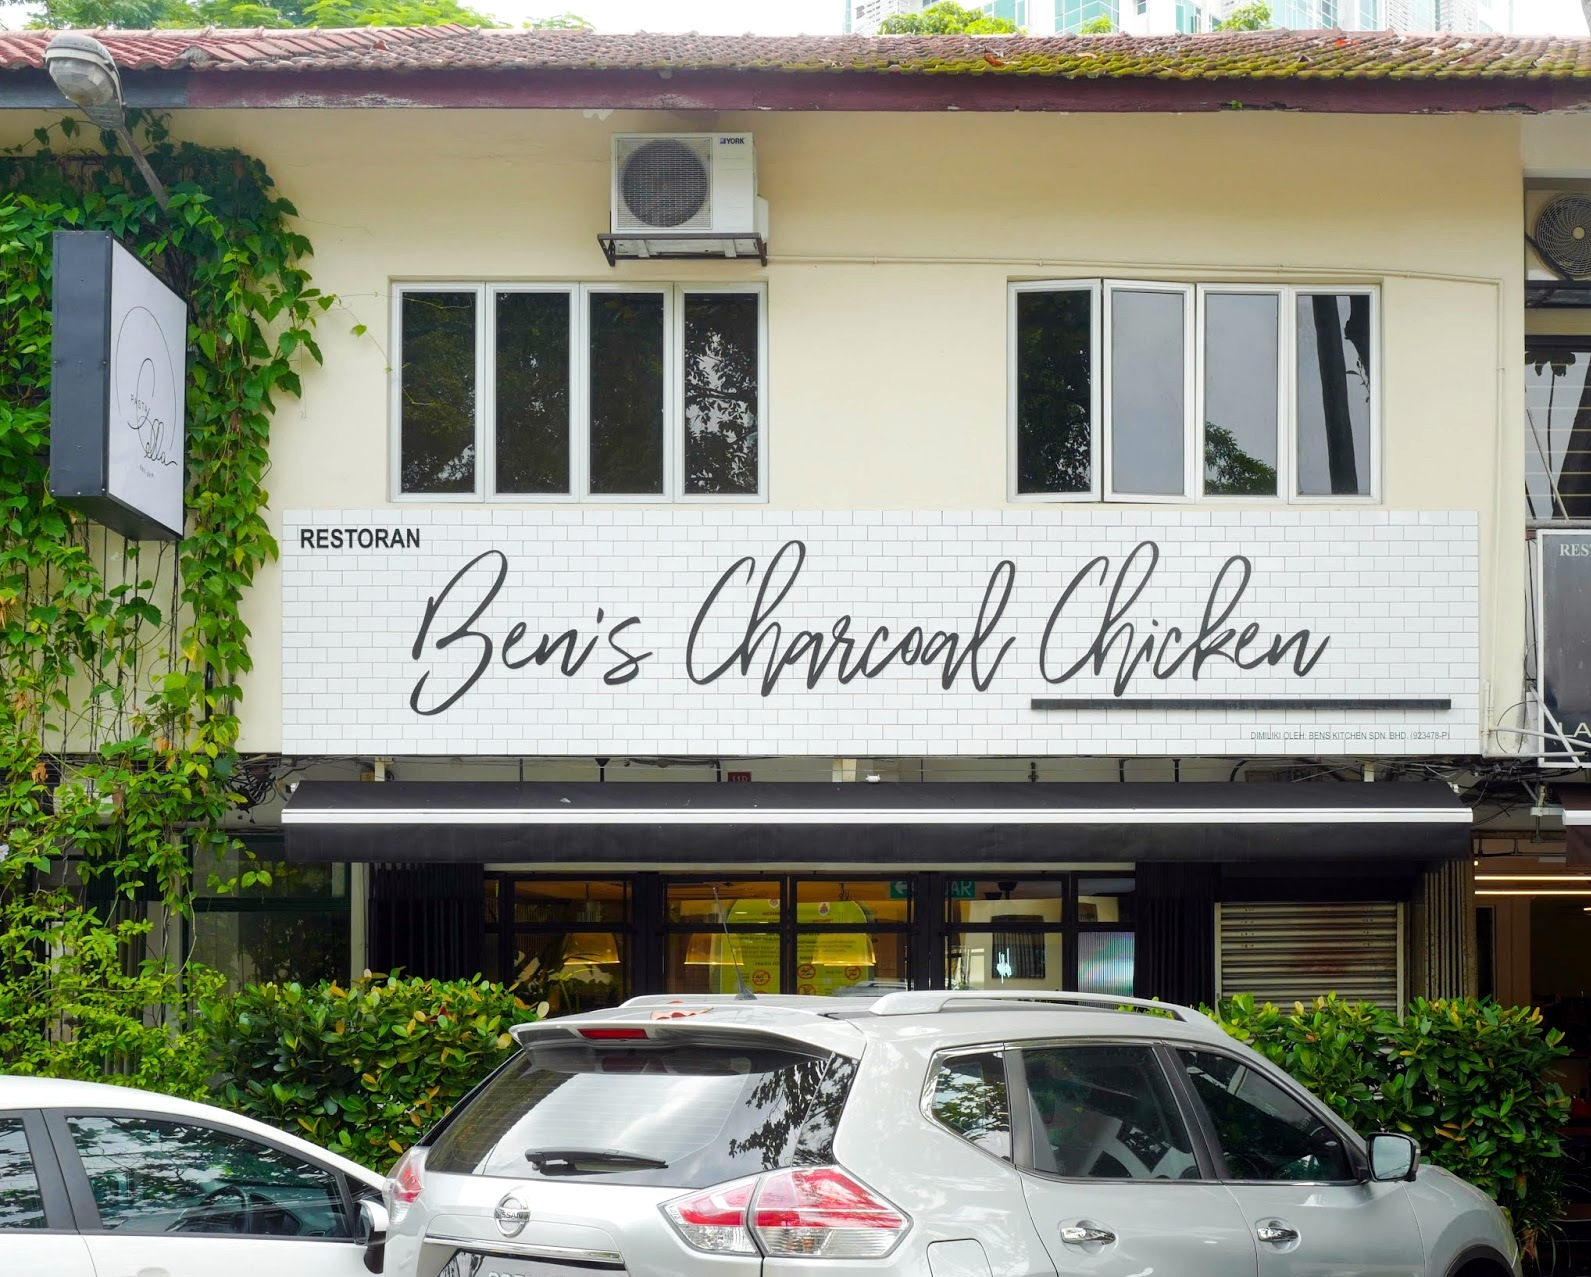 ben's charcoal chicken, bangsar